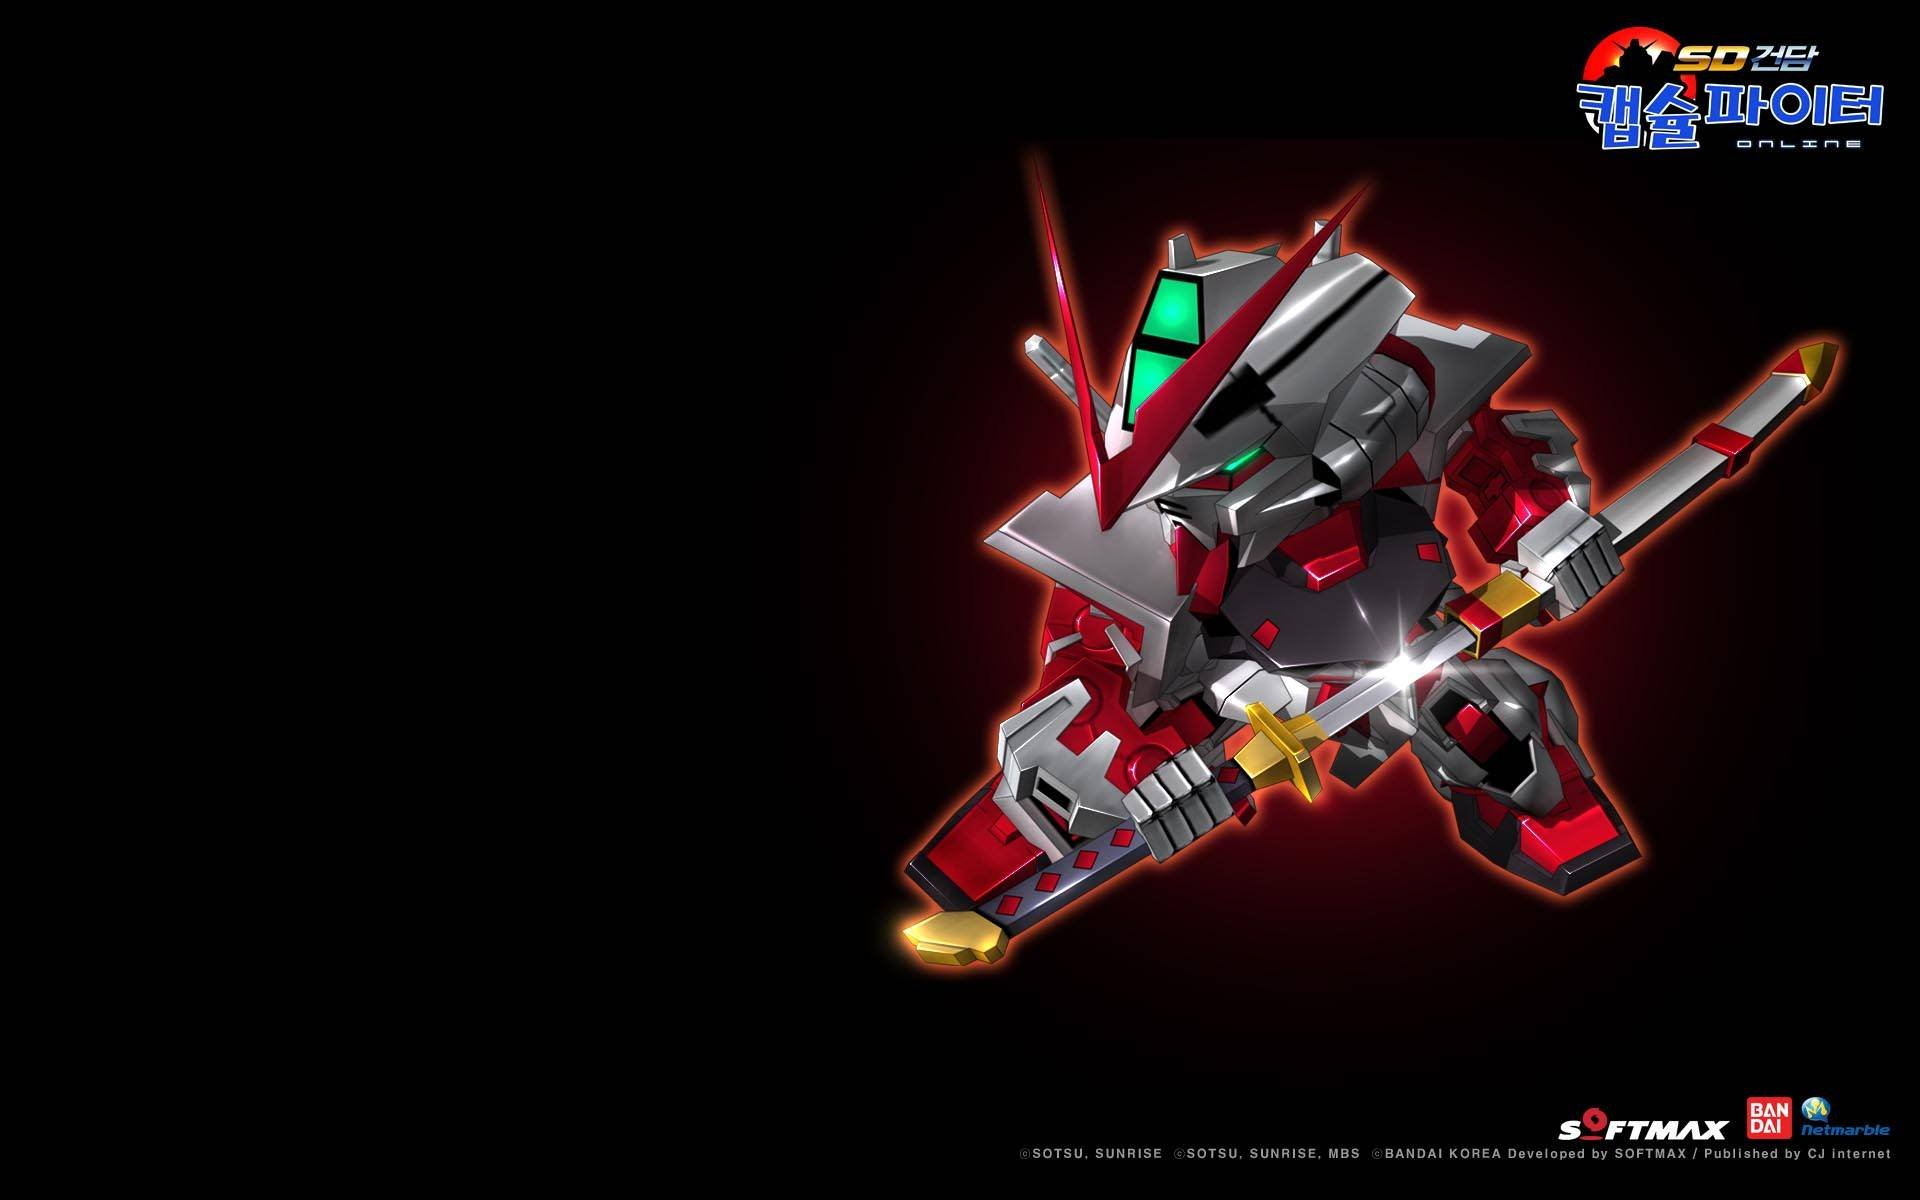 SD Gundam Capsule Fighter Online sci-fi shooter tps action